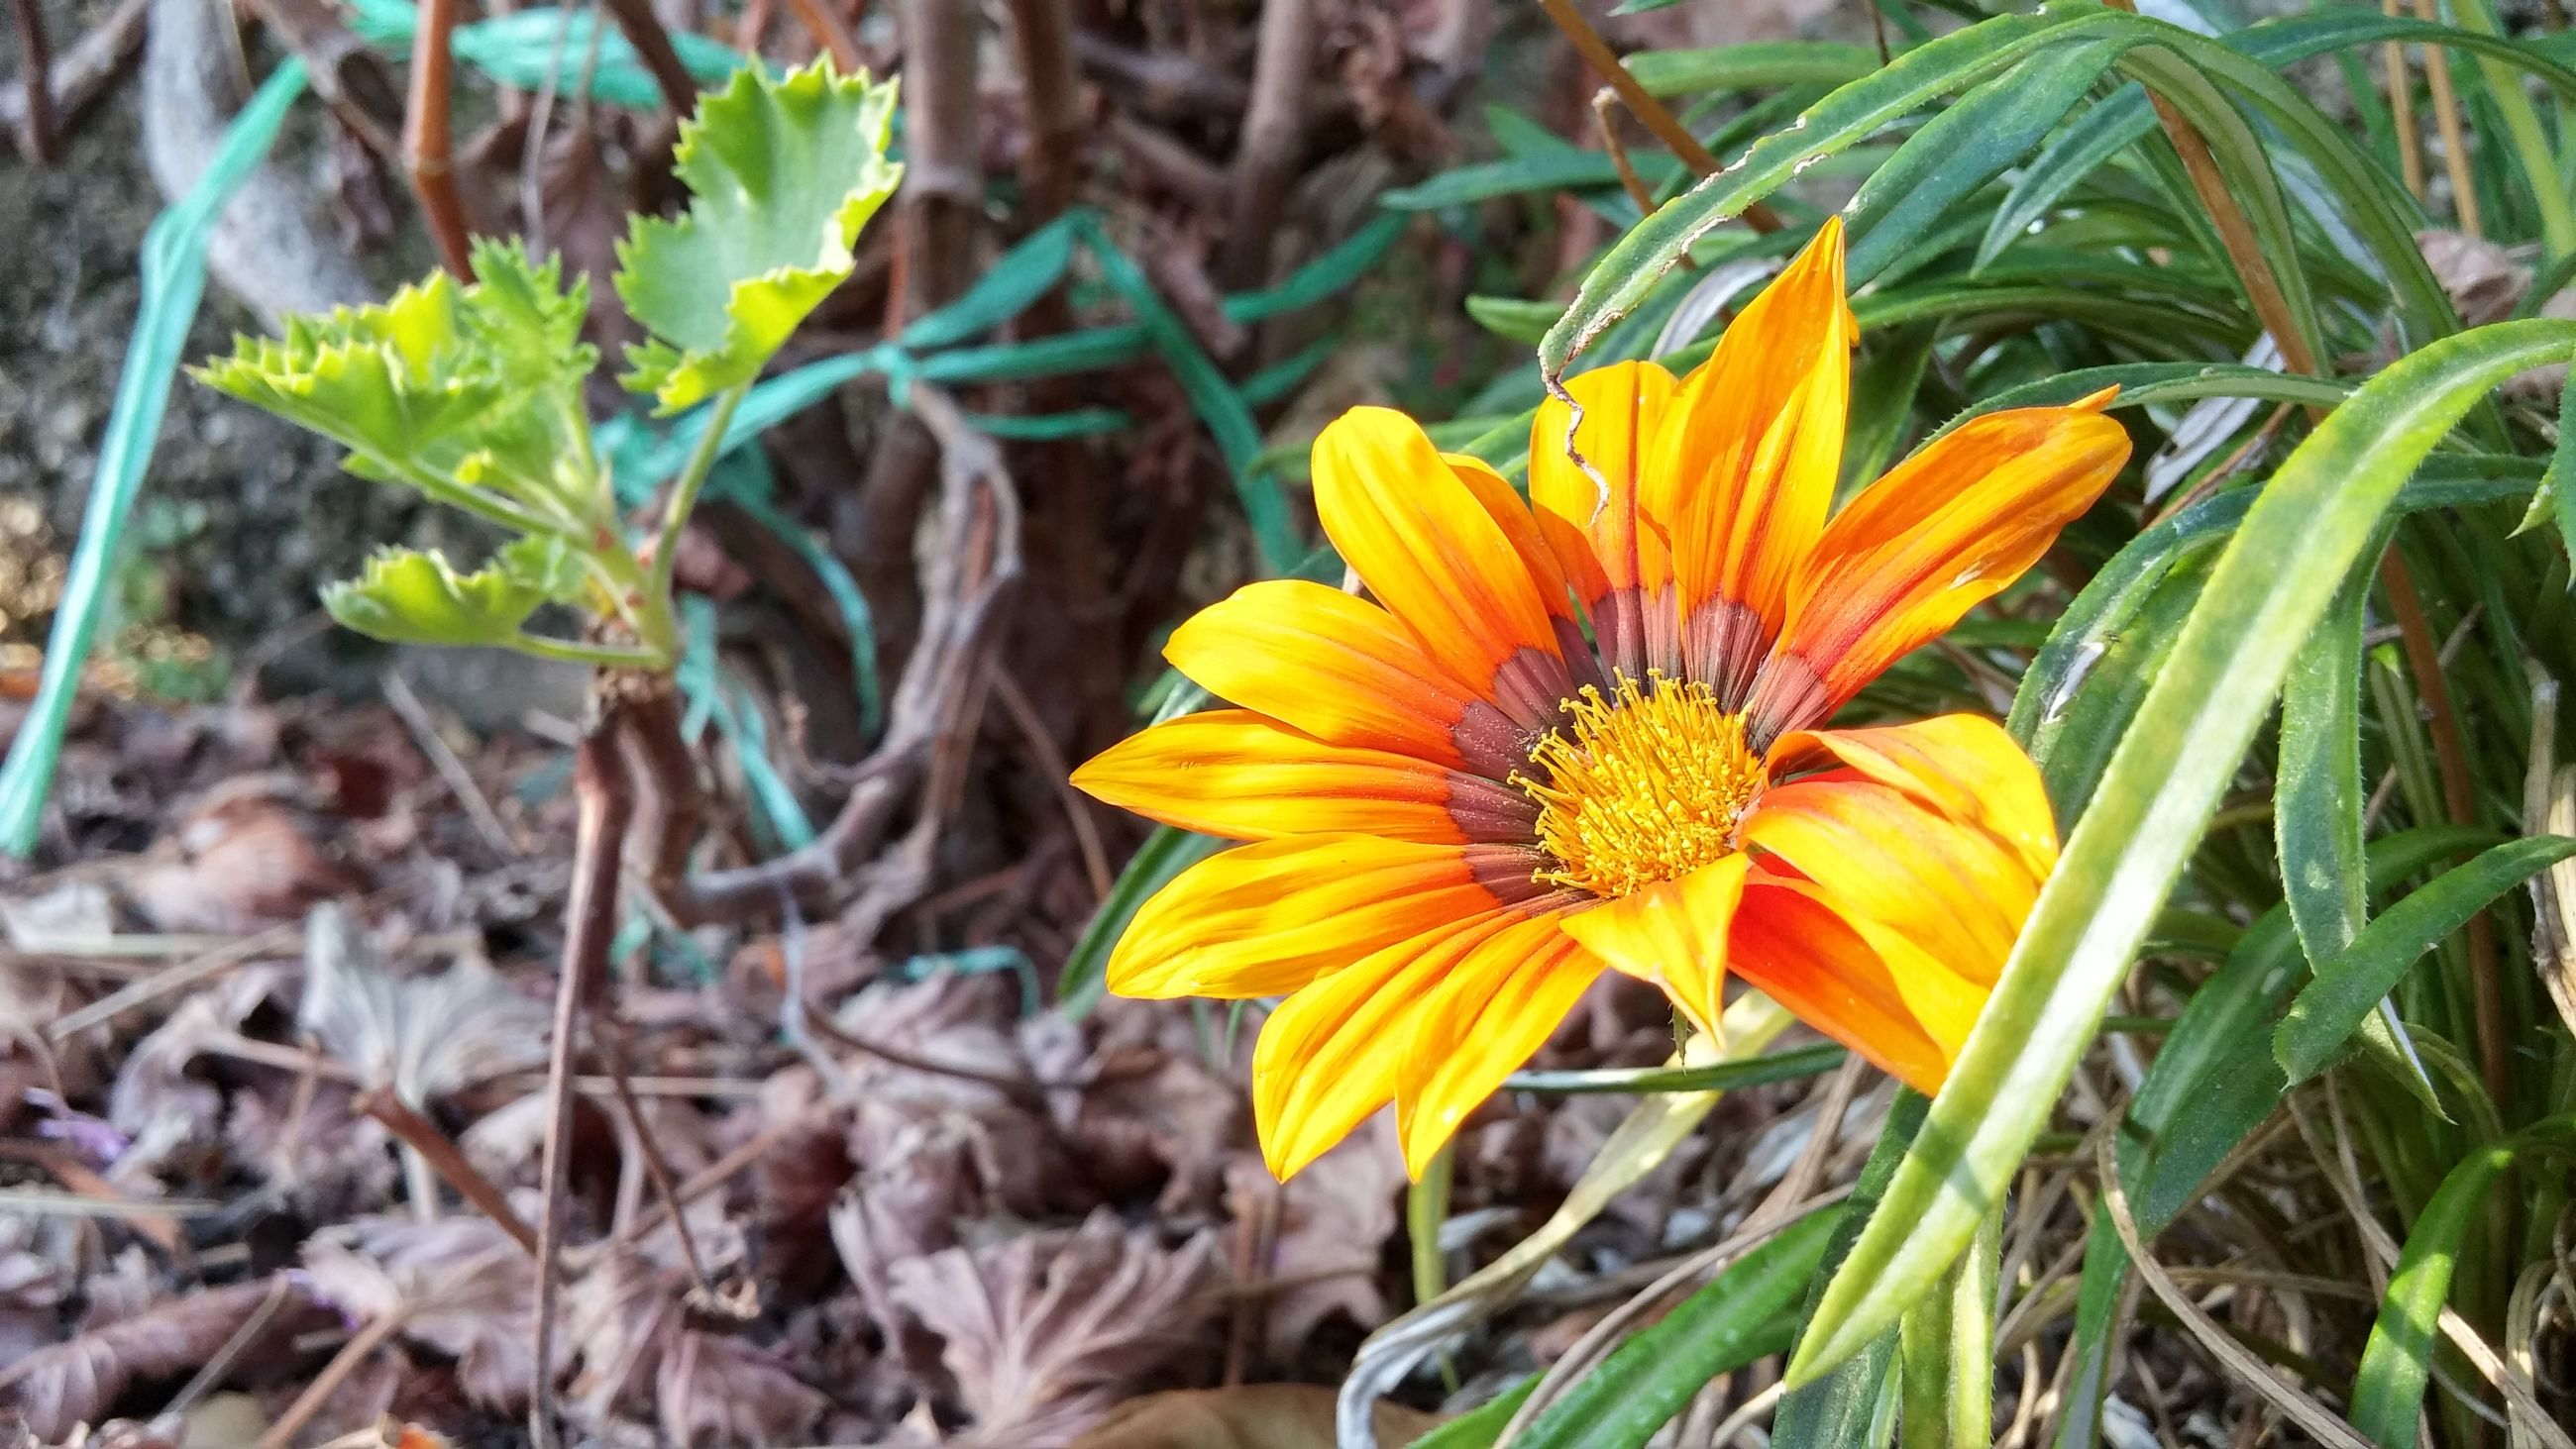 flower, petal, fragility, flower head, freshness, yellow, growth, close-up, plant, beauty in nature, insect, pollen, blooming, nature, focus on foreground, single flower, leaf, orange color, one animal, high angle view